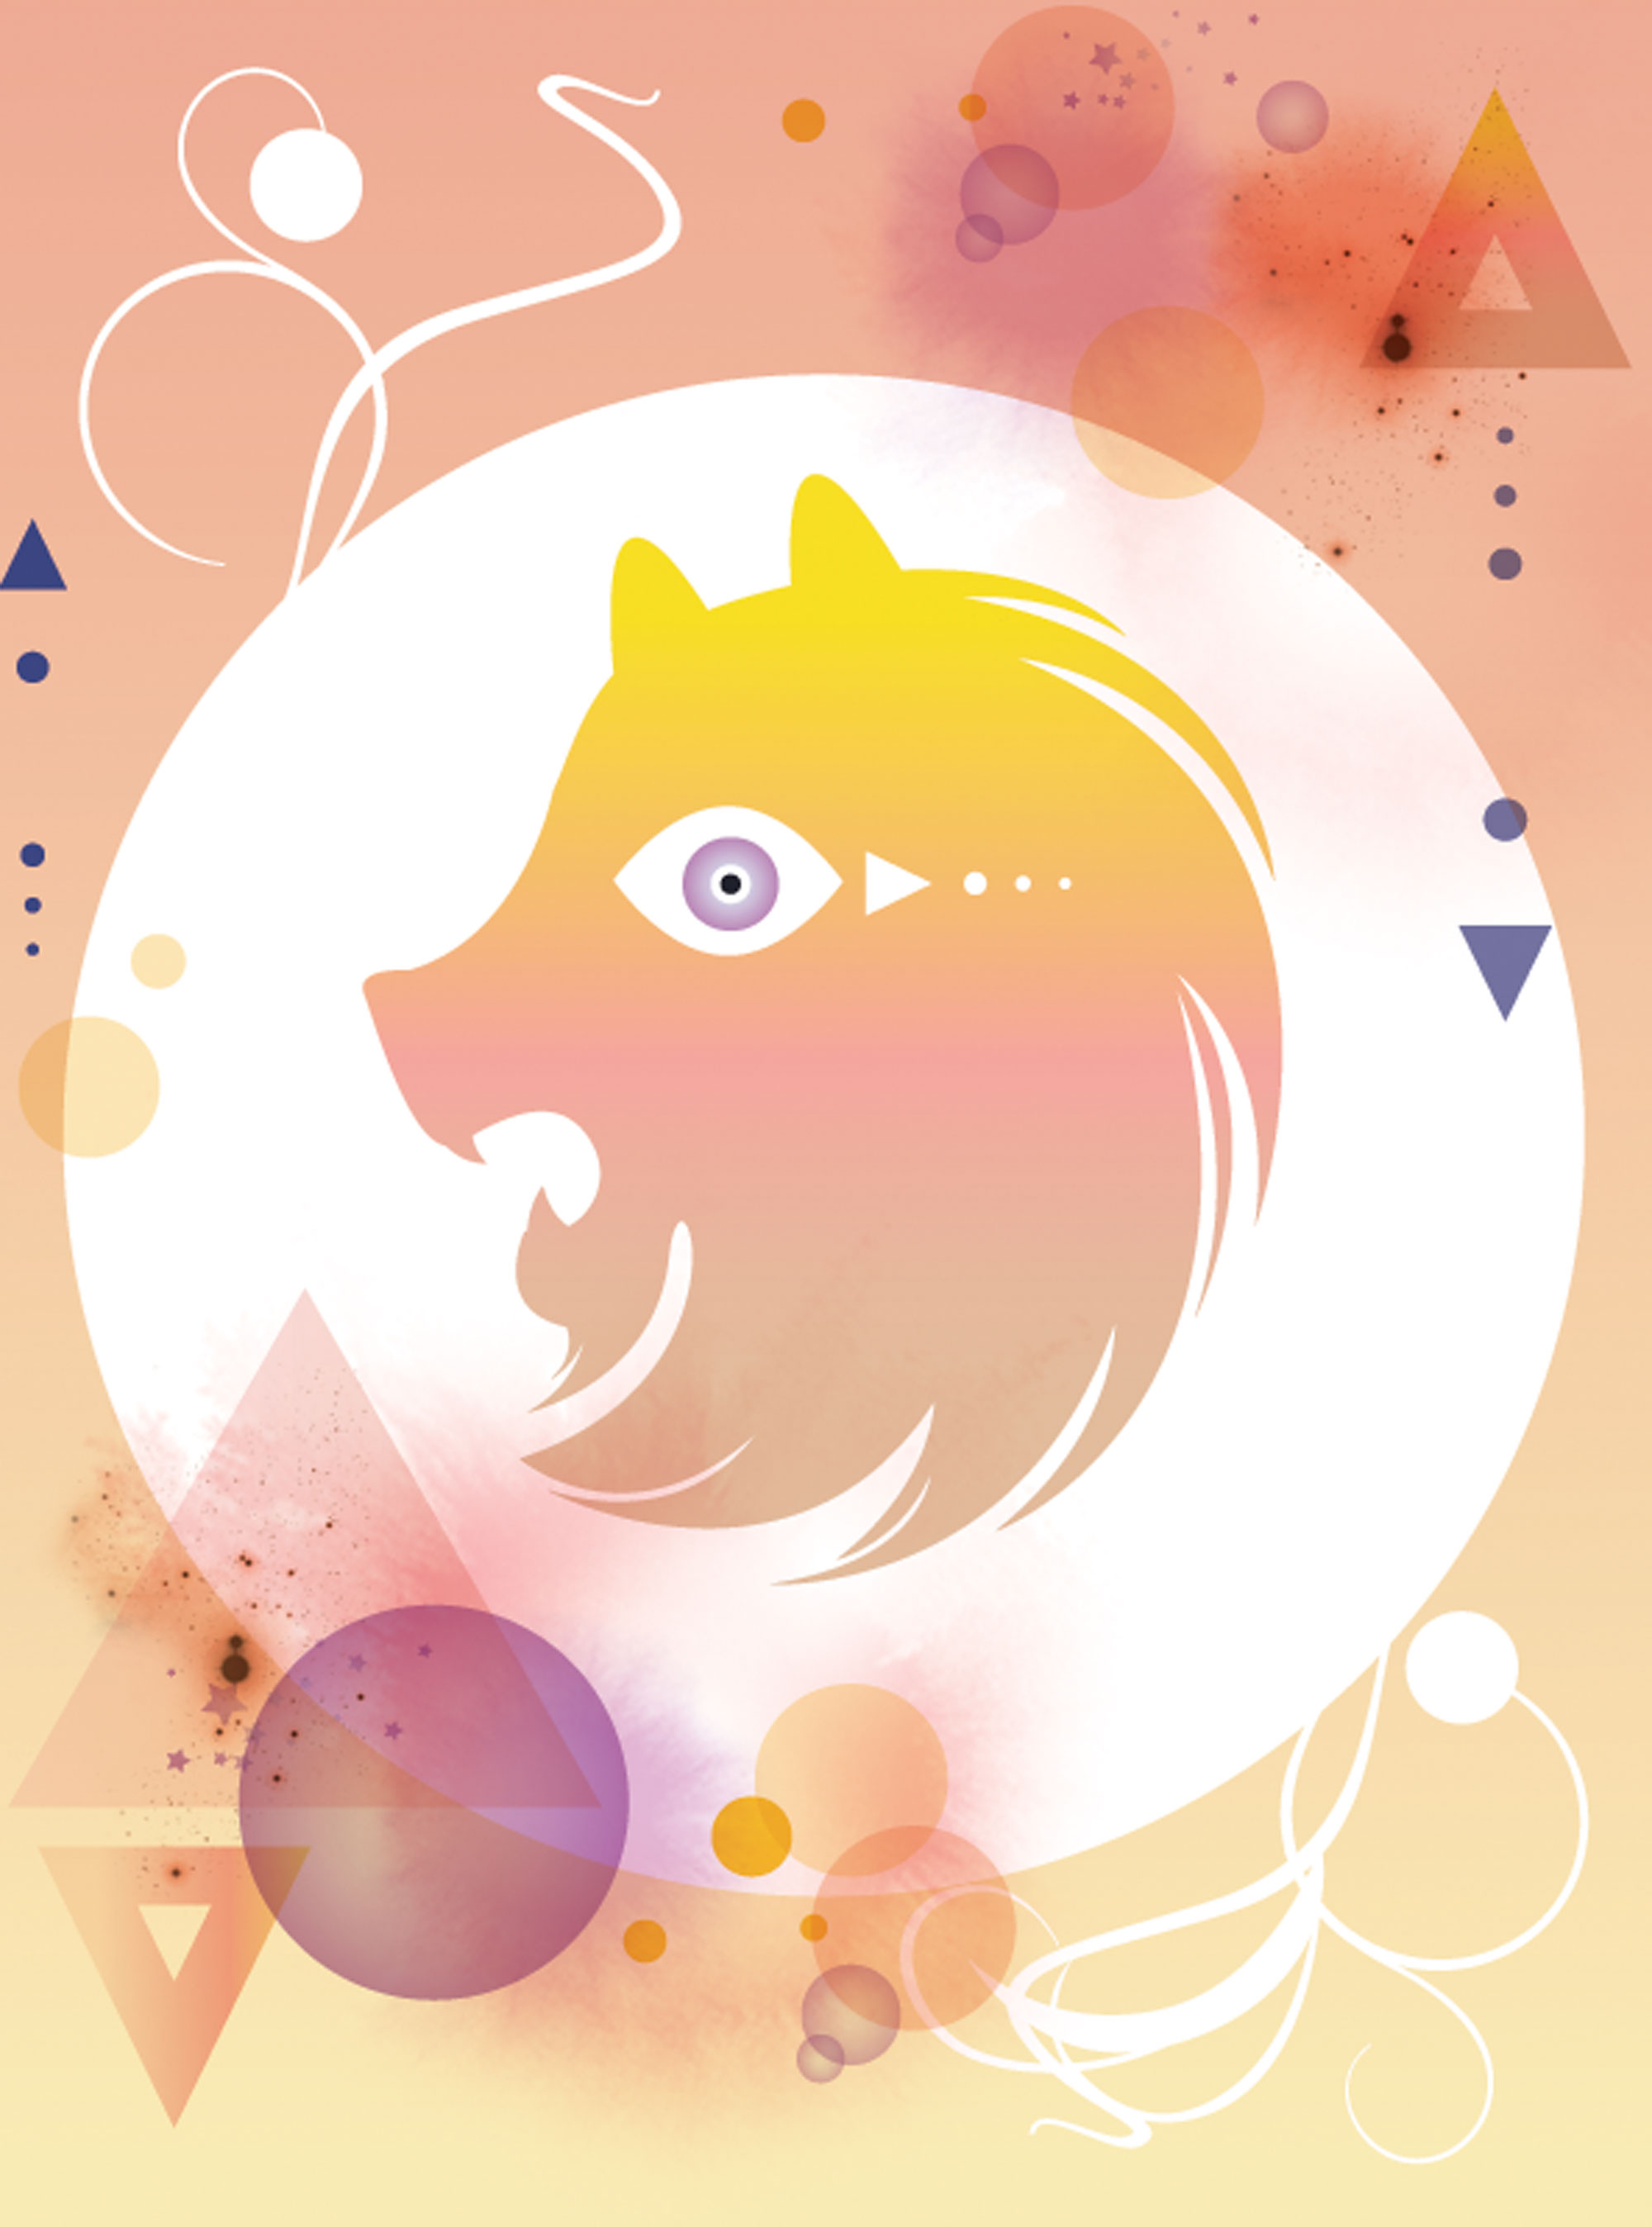 Weekly Horoscope: Leo star sign